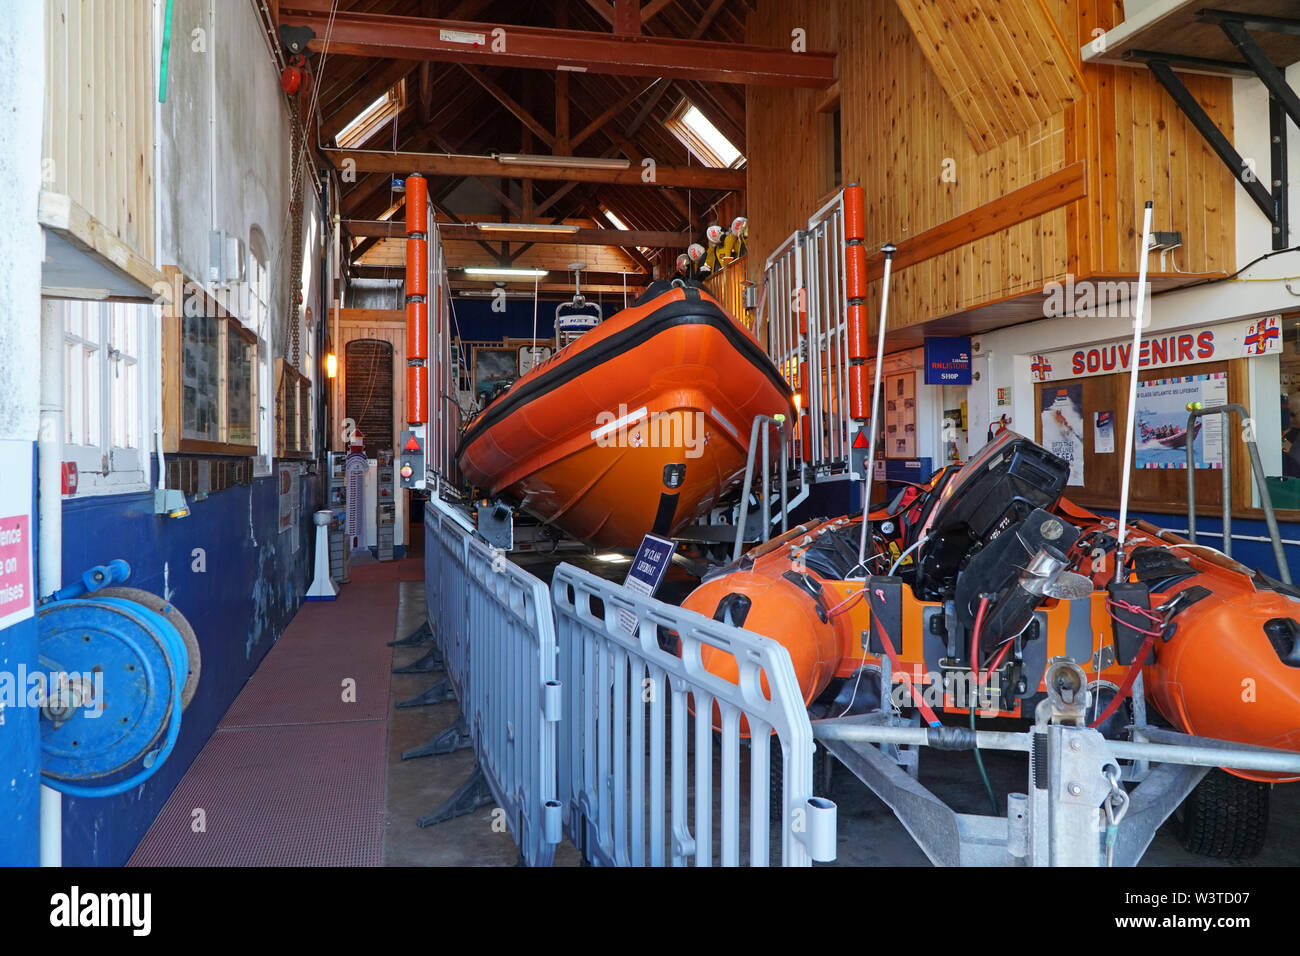 Interior of the Minehead RNLI Lifeboat Station - Stock Image